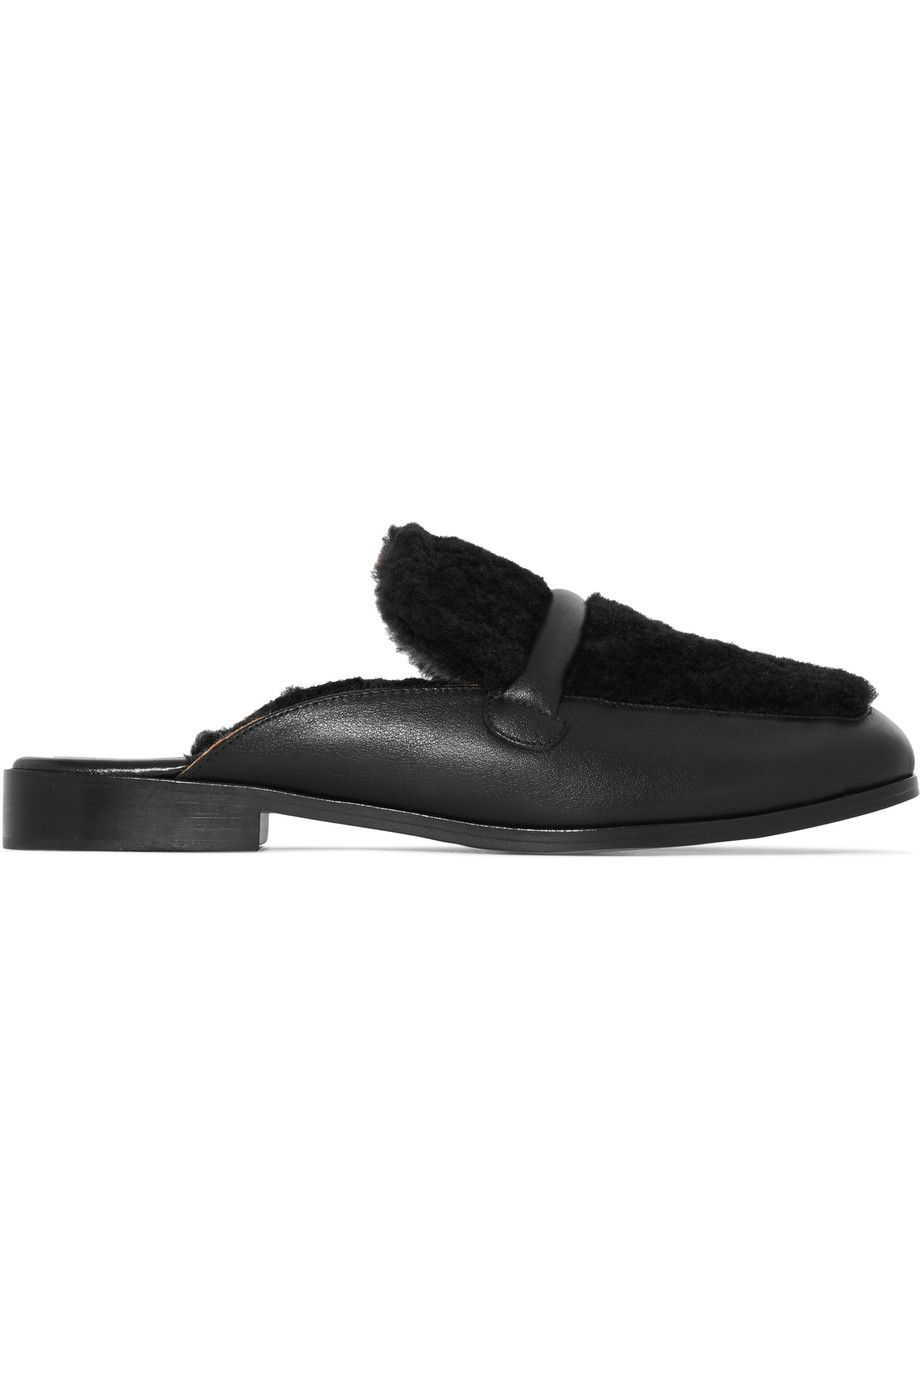 Leather · Shop on-sale NewbarK Melanie shearling and leather slippers.